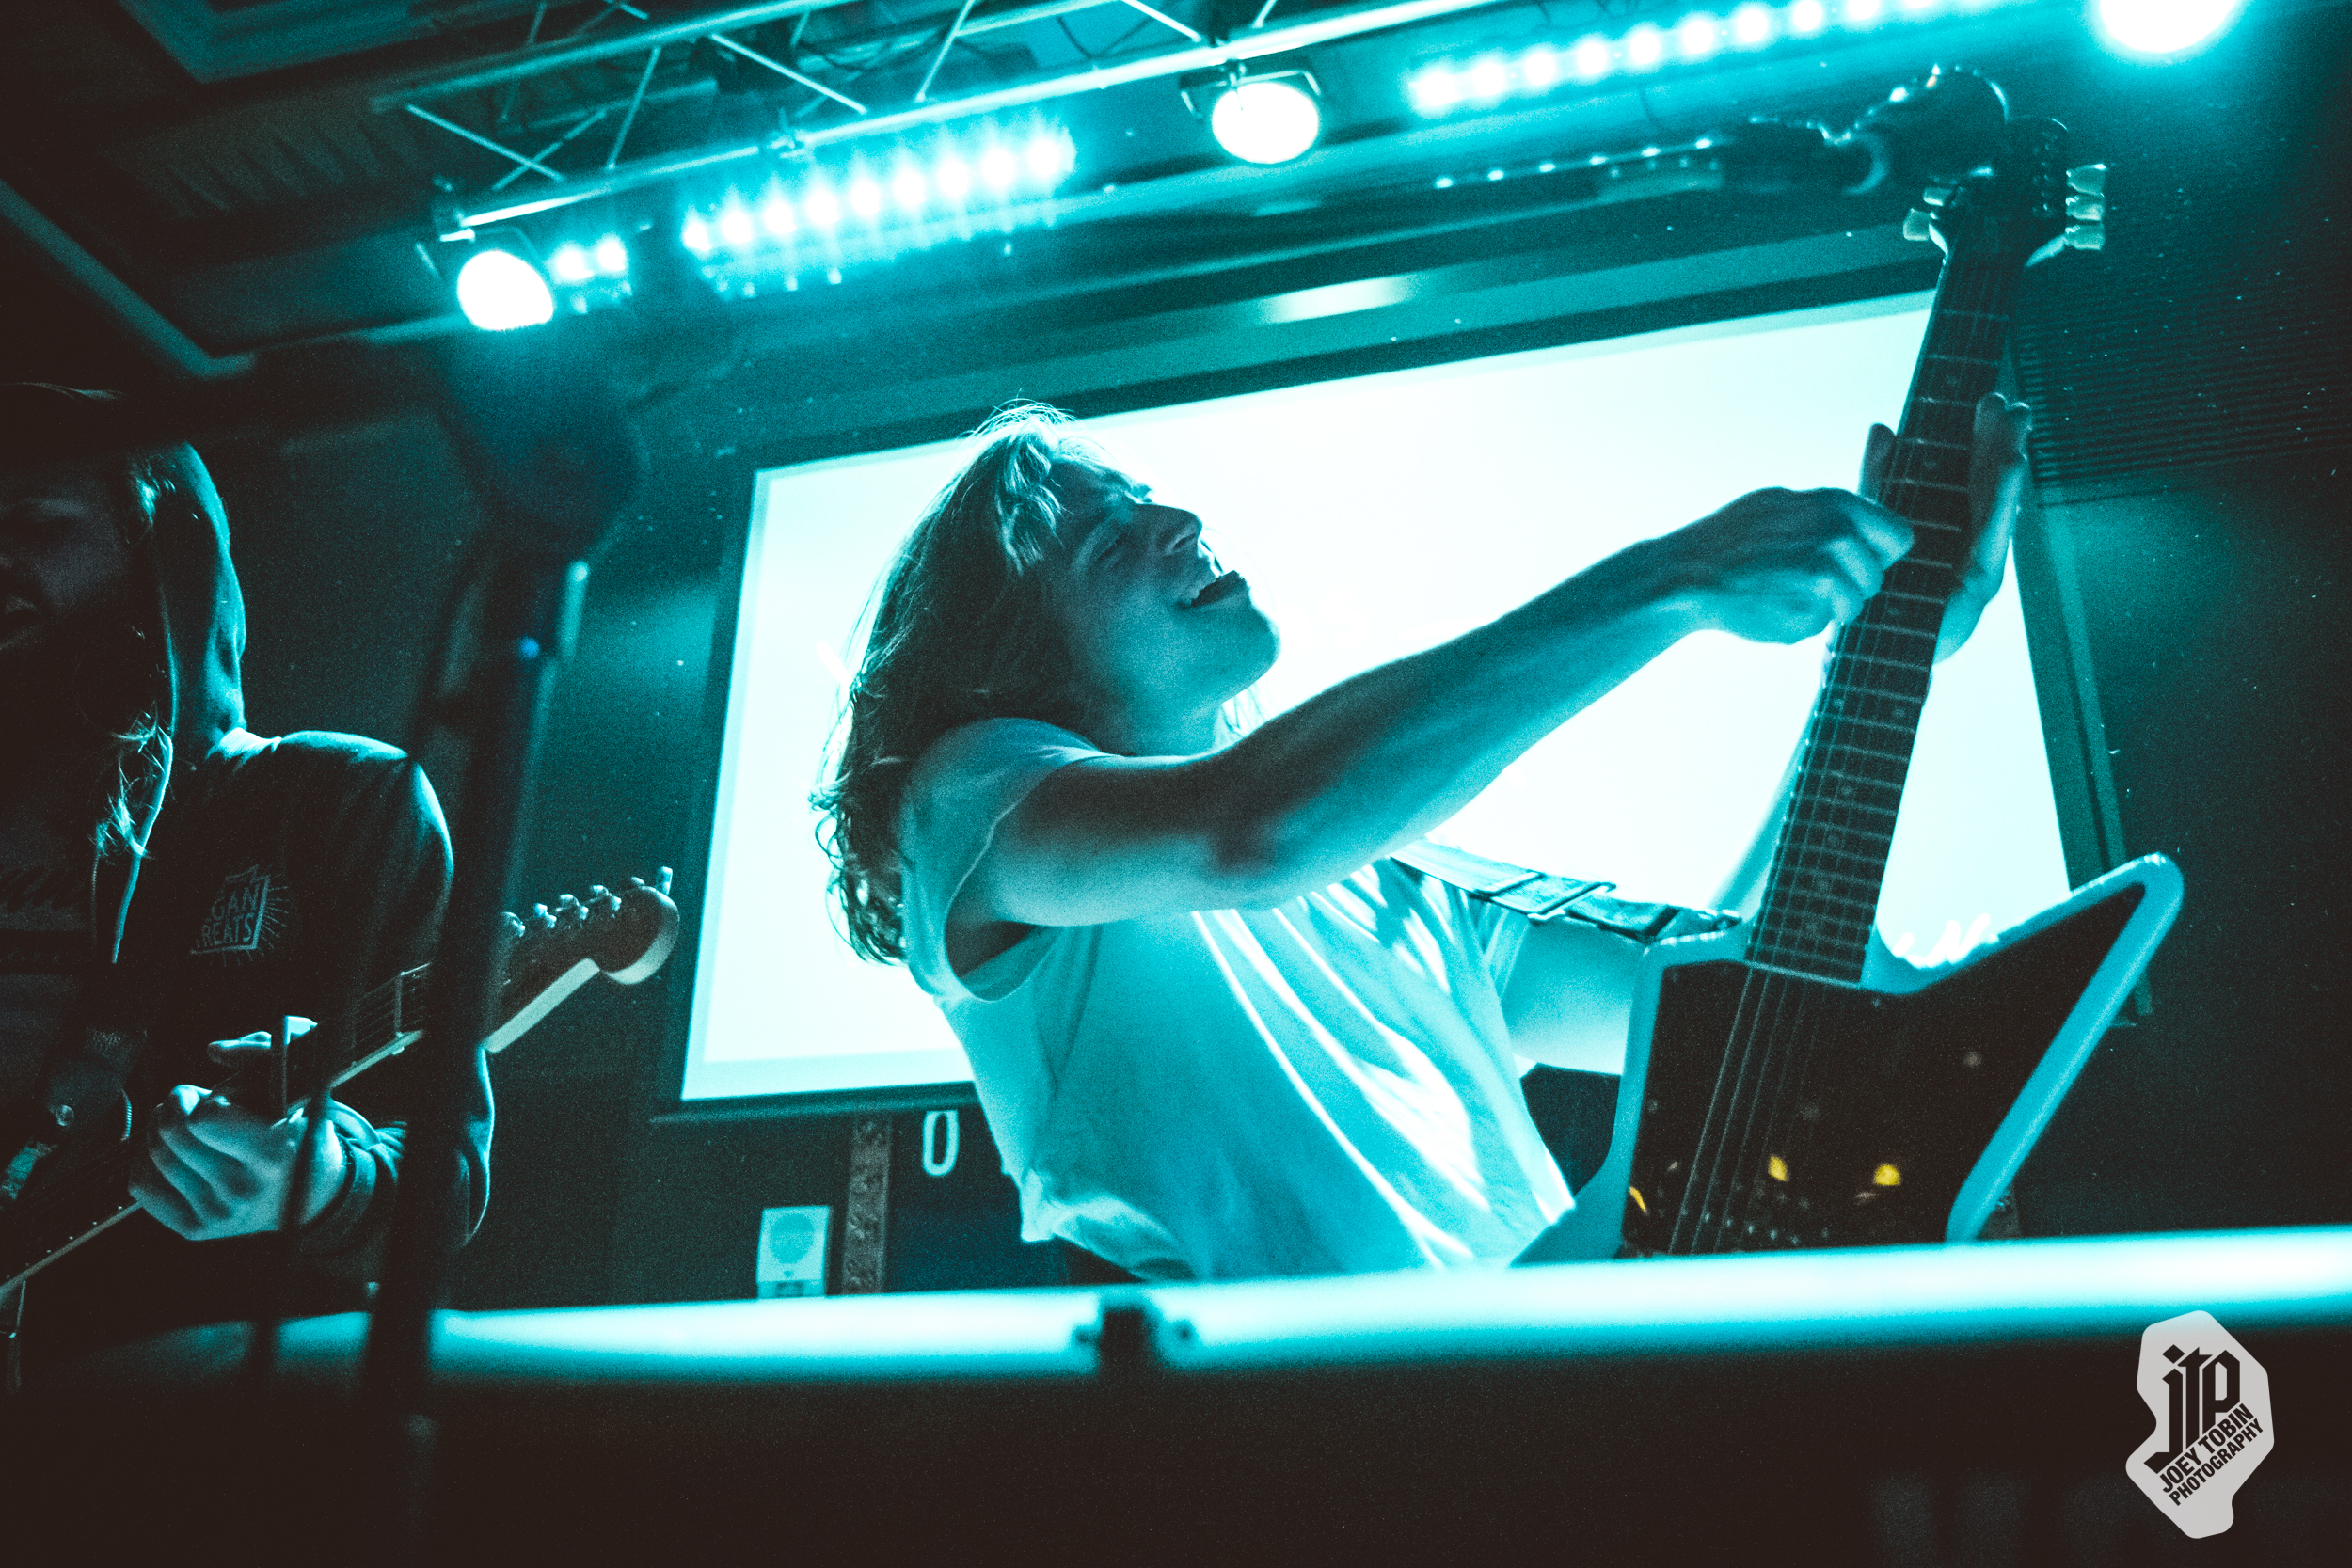 Sorority_Noise_HOB_San_Diego_Watermarked_0013.jpg